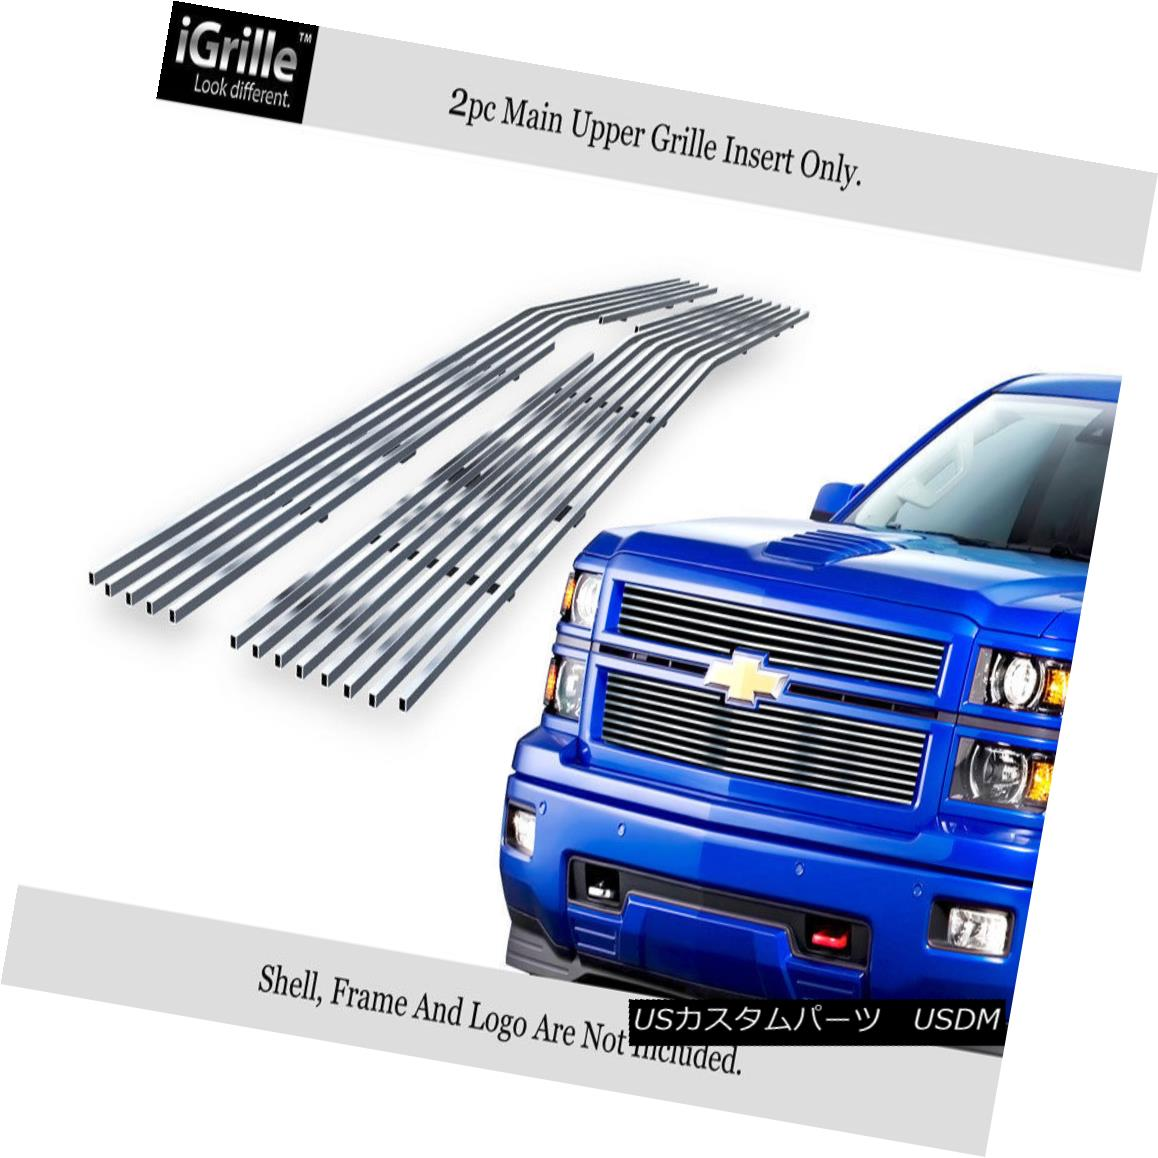 グリル Fits 2014-2015 Chevy Silverado 1500 Reg Model Stainless Steel Billet Grille 2014-2015 Chevy Silverado 1500 Regモデルステンレススチールビレットグリルに適合